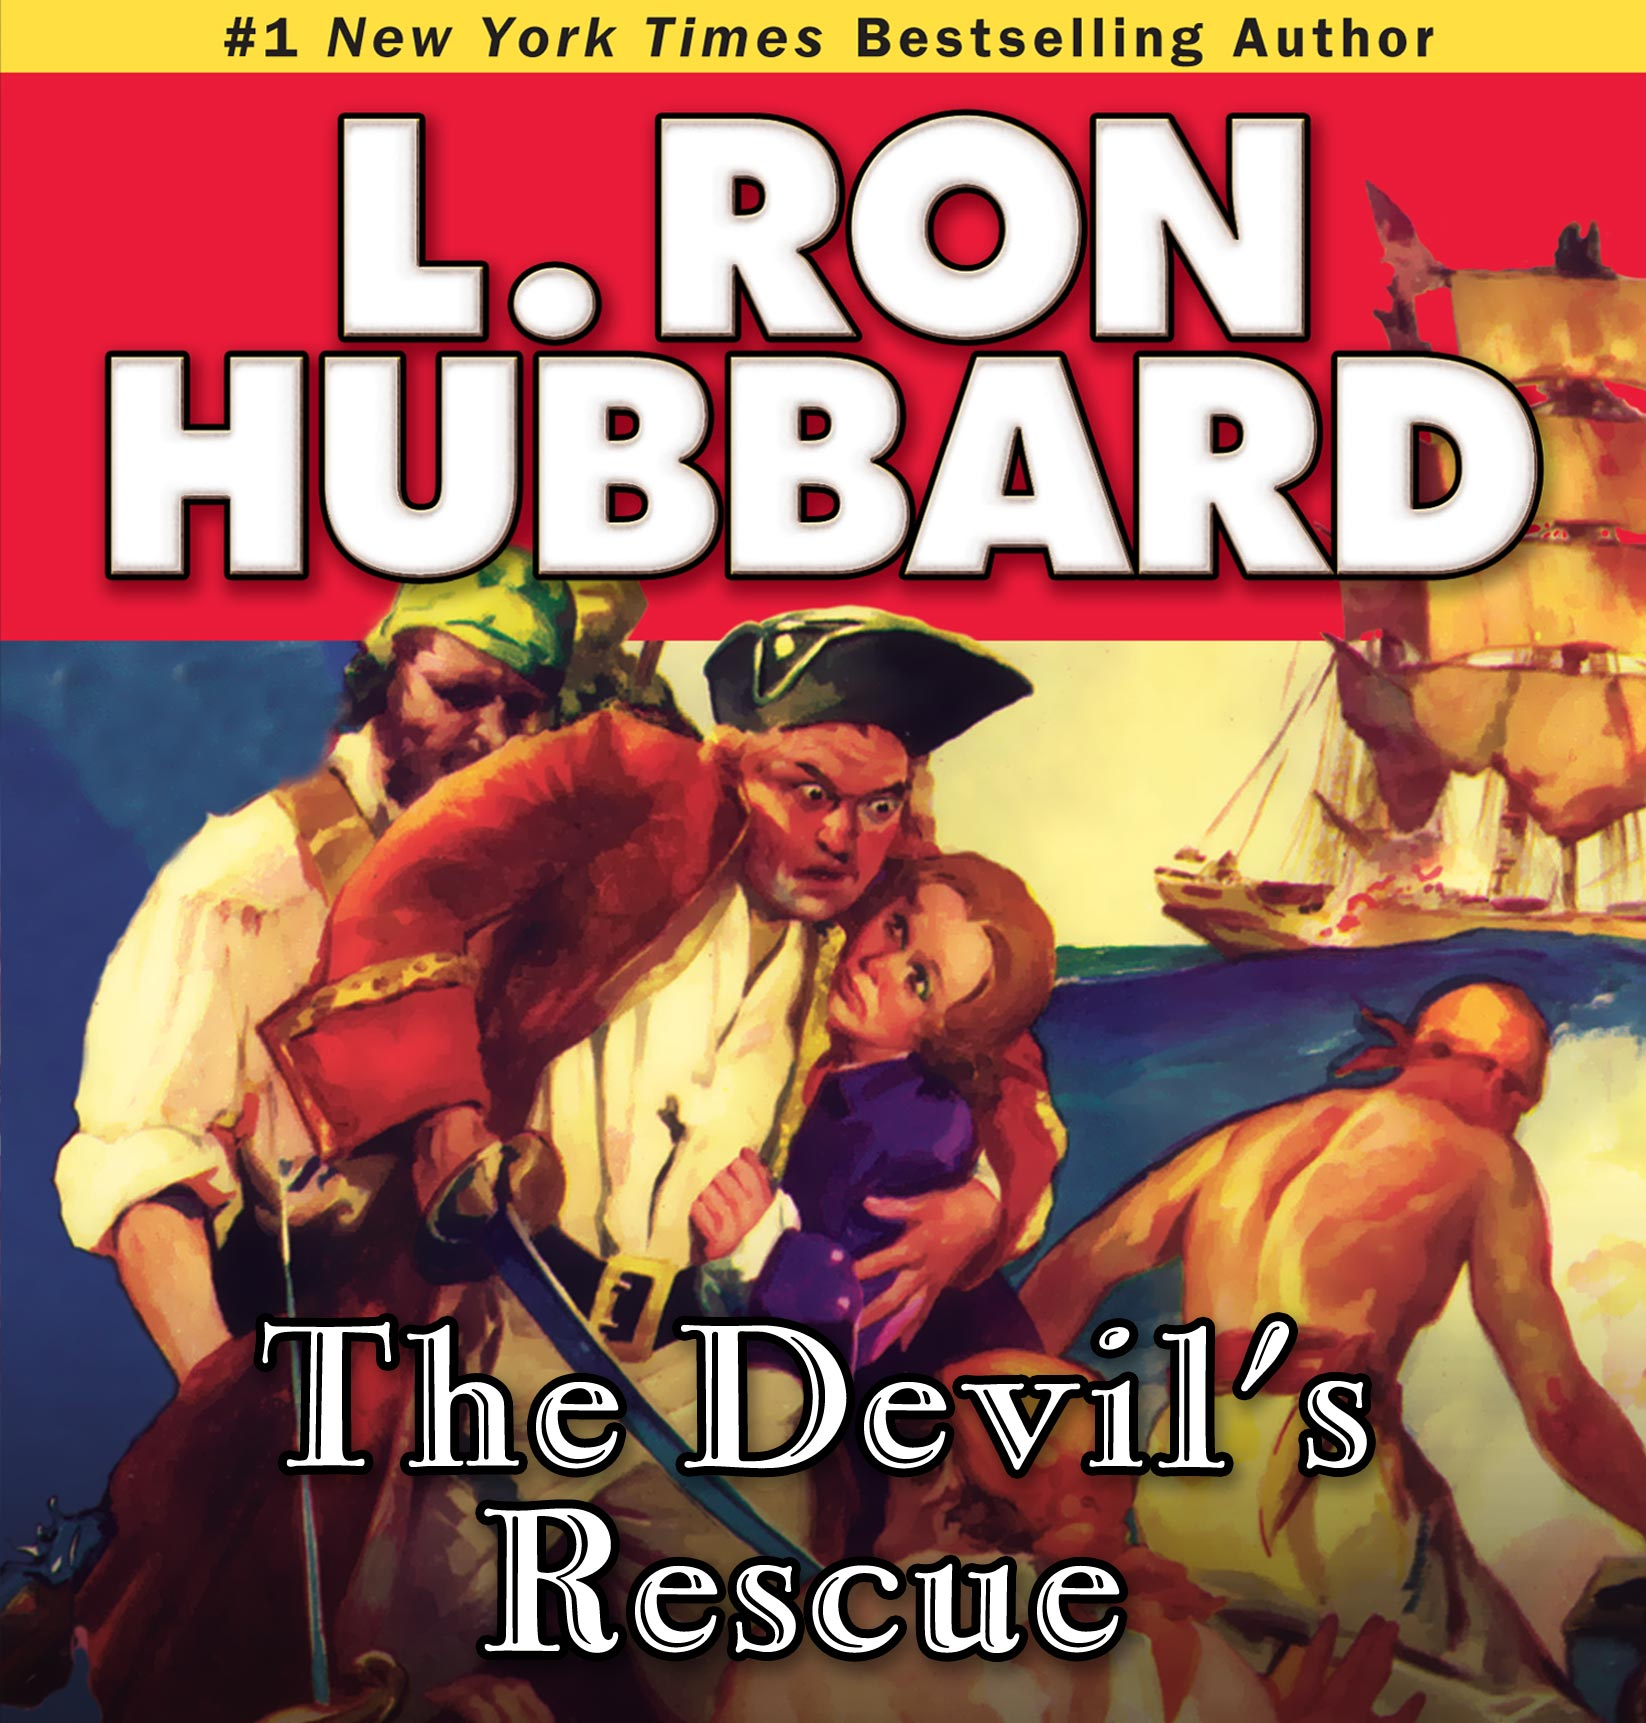 The Devil's Rescue